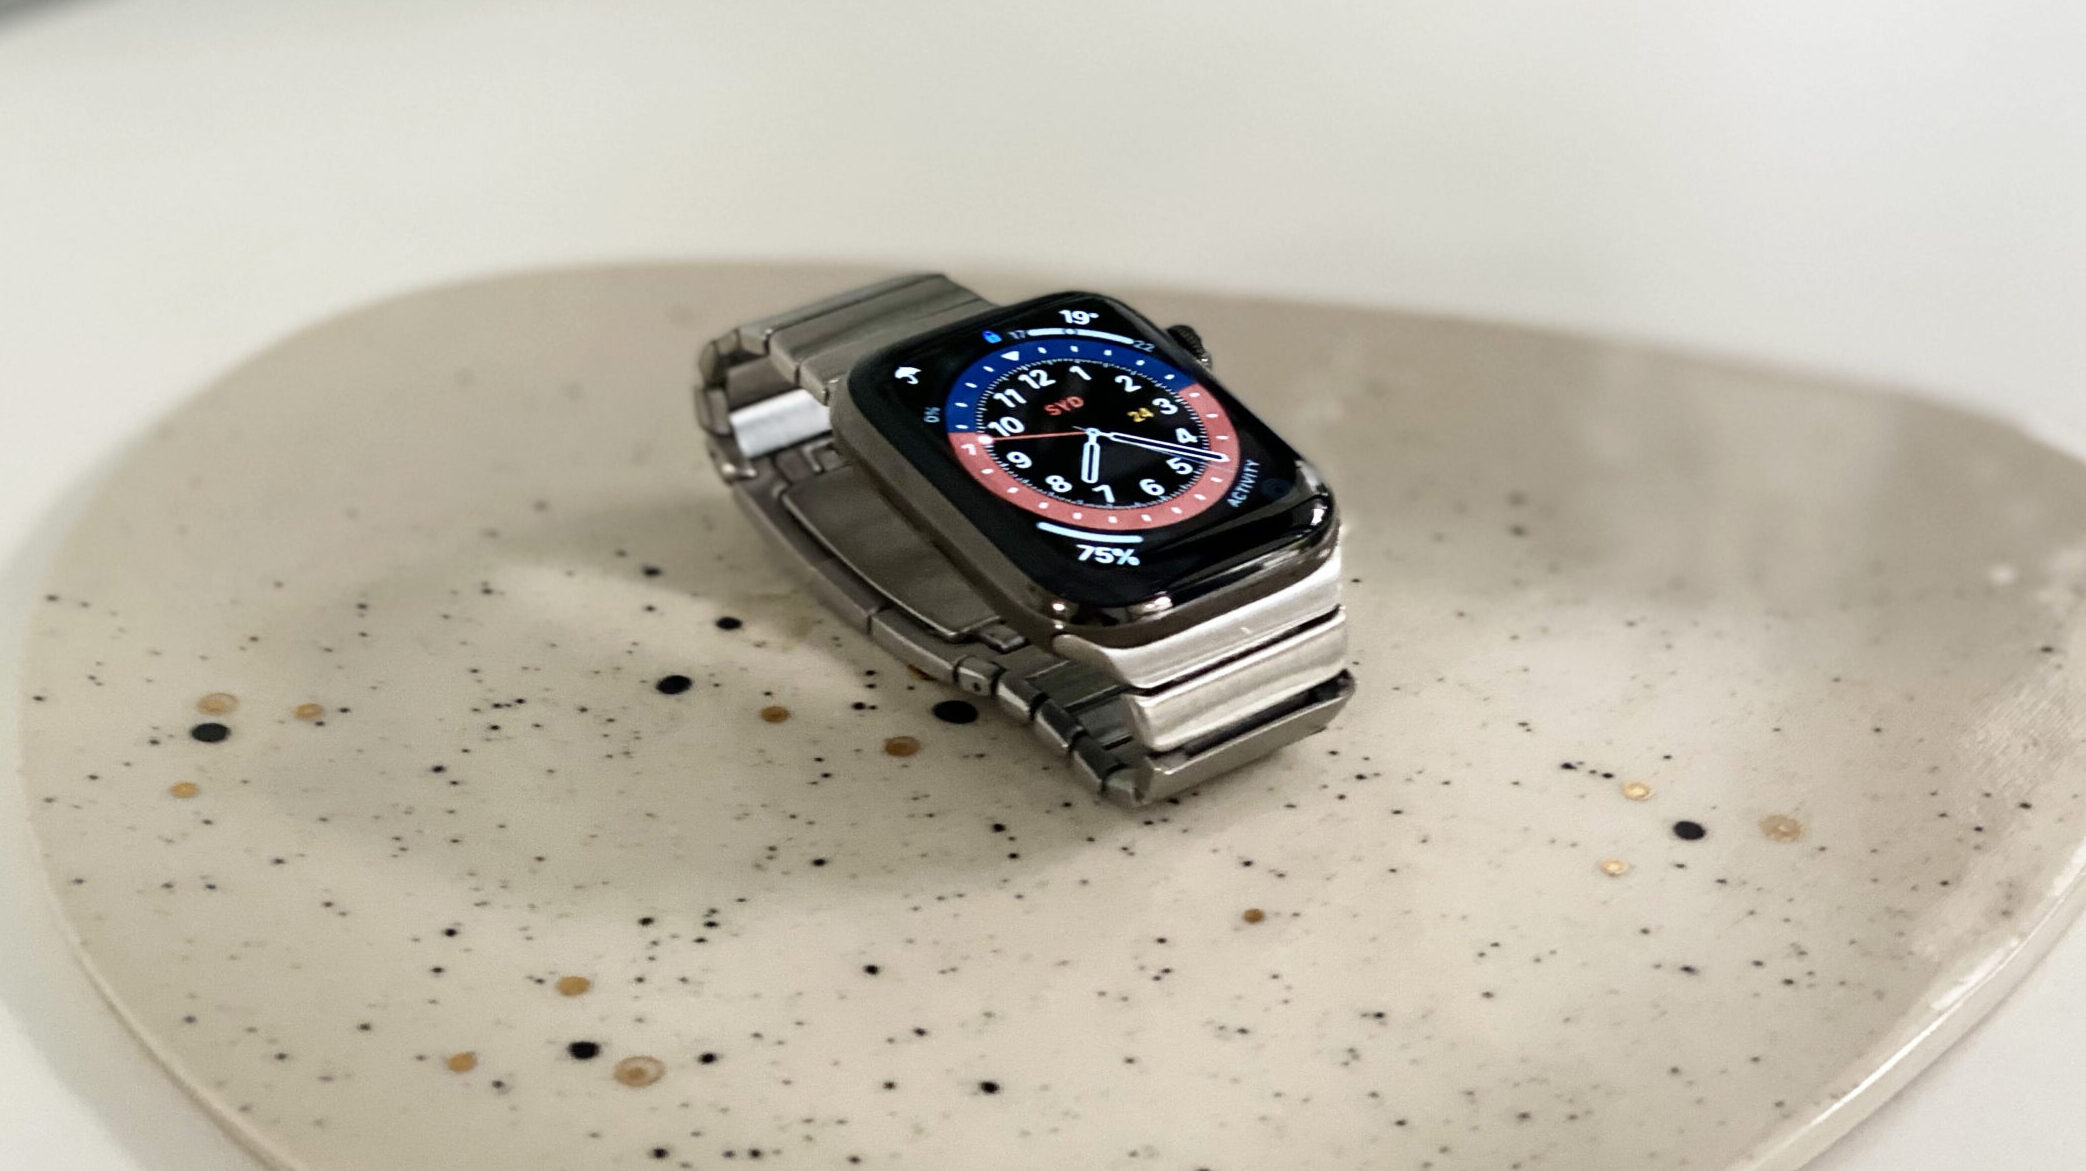 Apple Watch Series 6 review: time to upgrade?